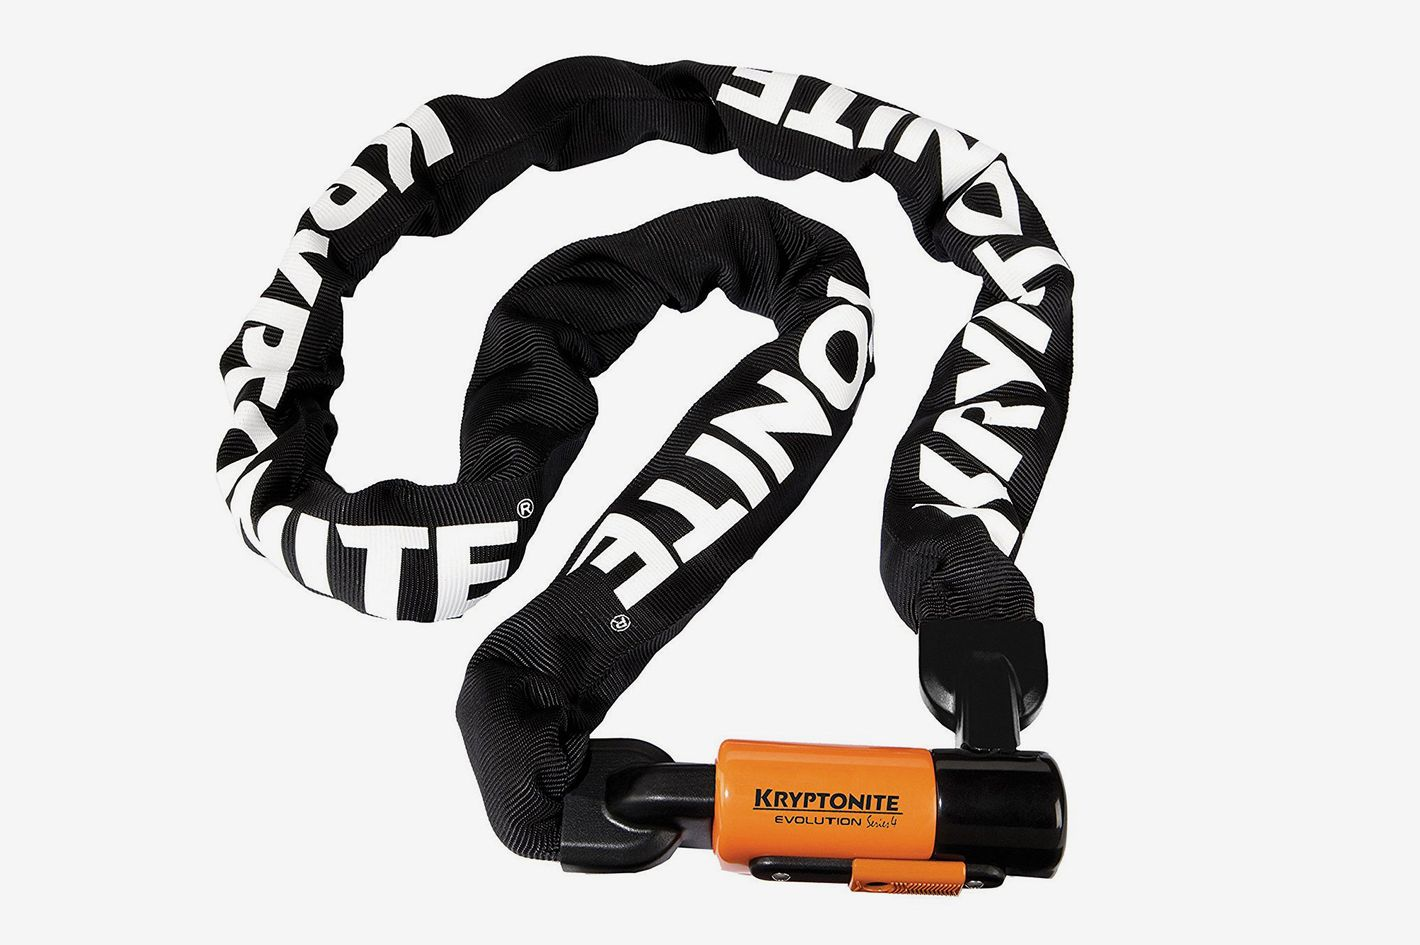 Kryptonite Evolution Series-4 Integrated Chain Bicycle Lock